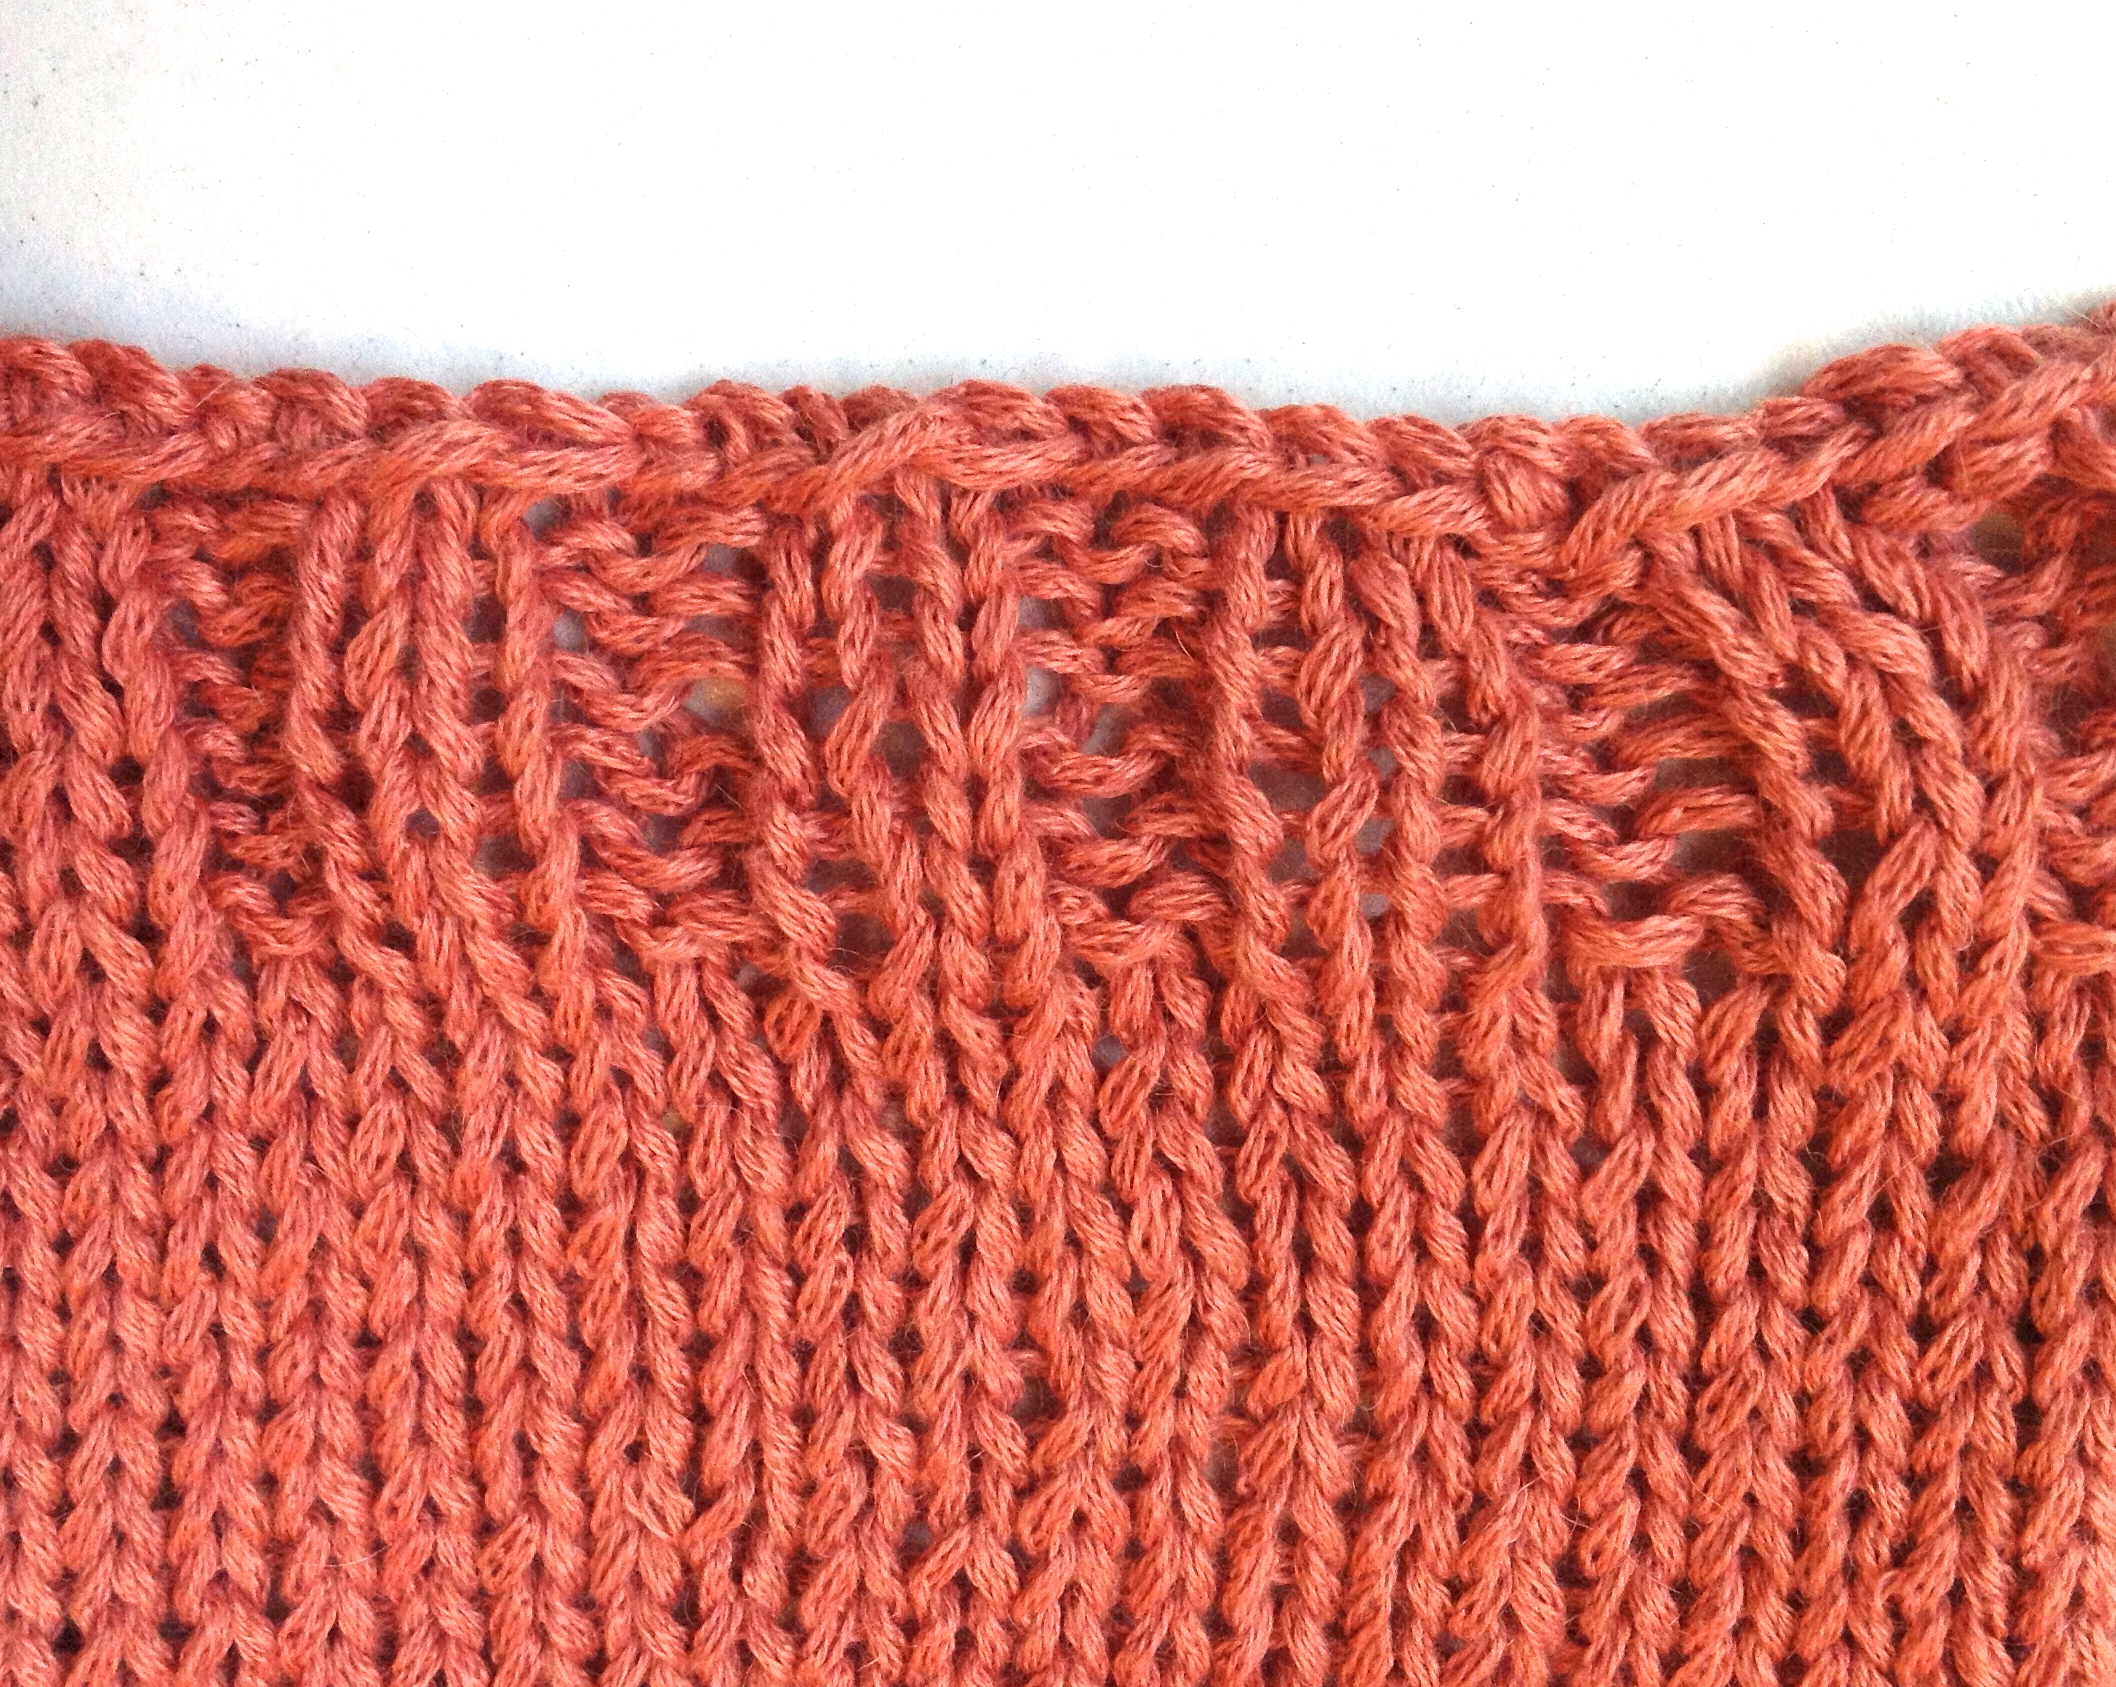 Ask Amanda: What does ?bind off in pattern? mean?